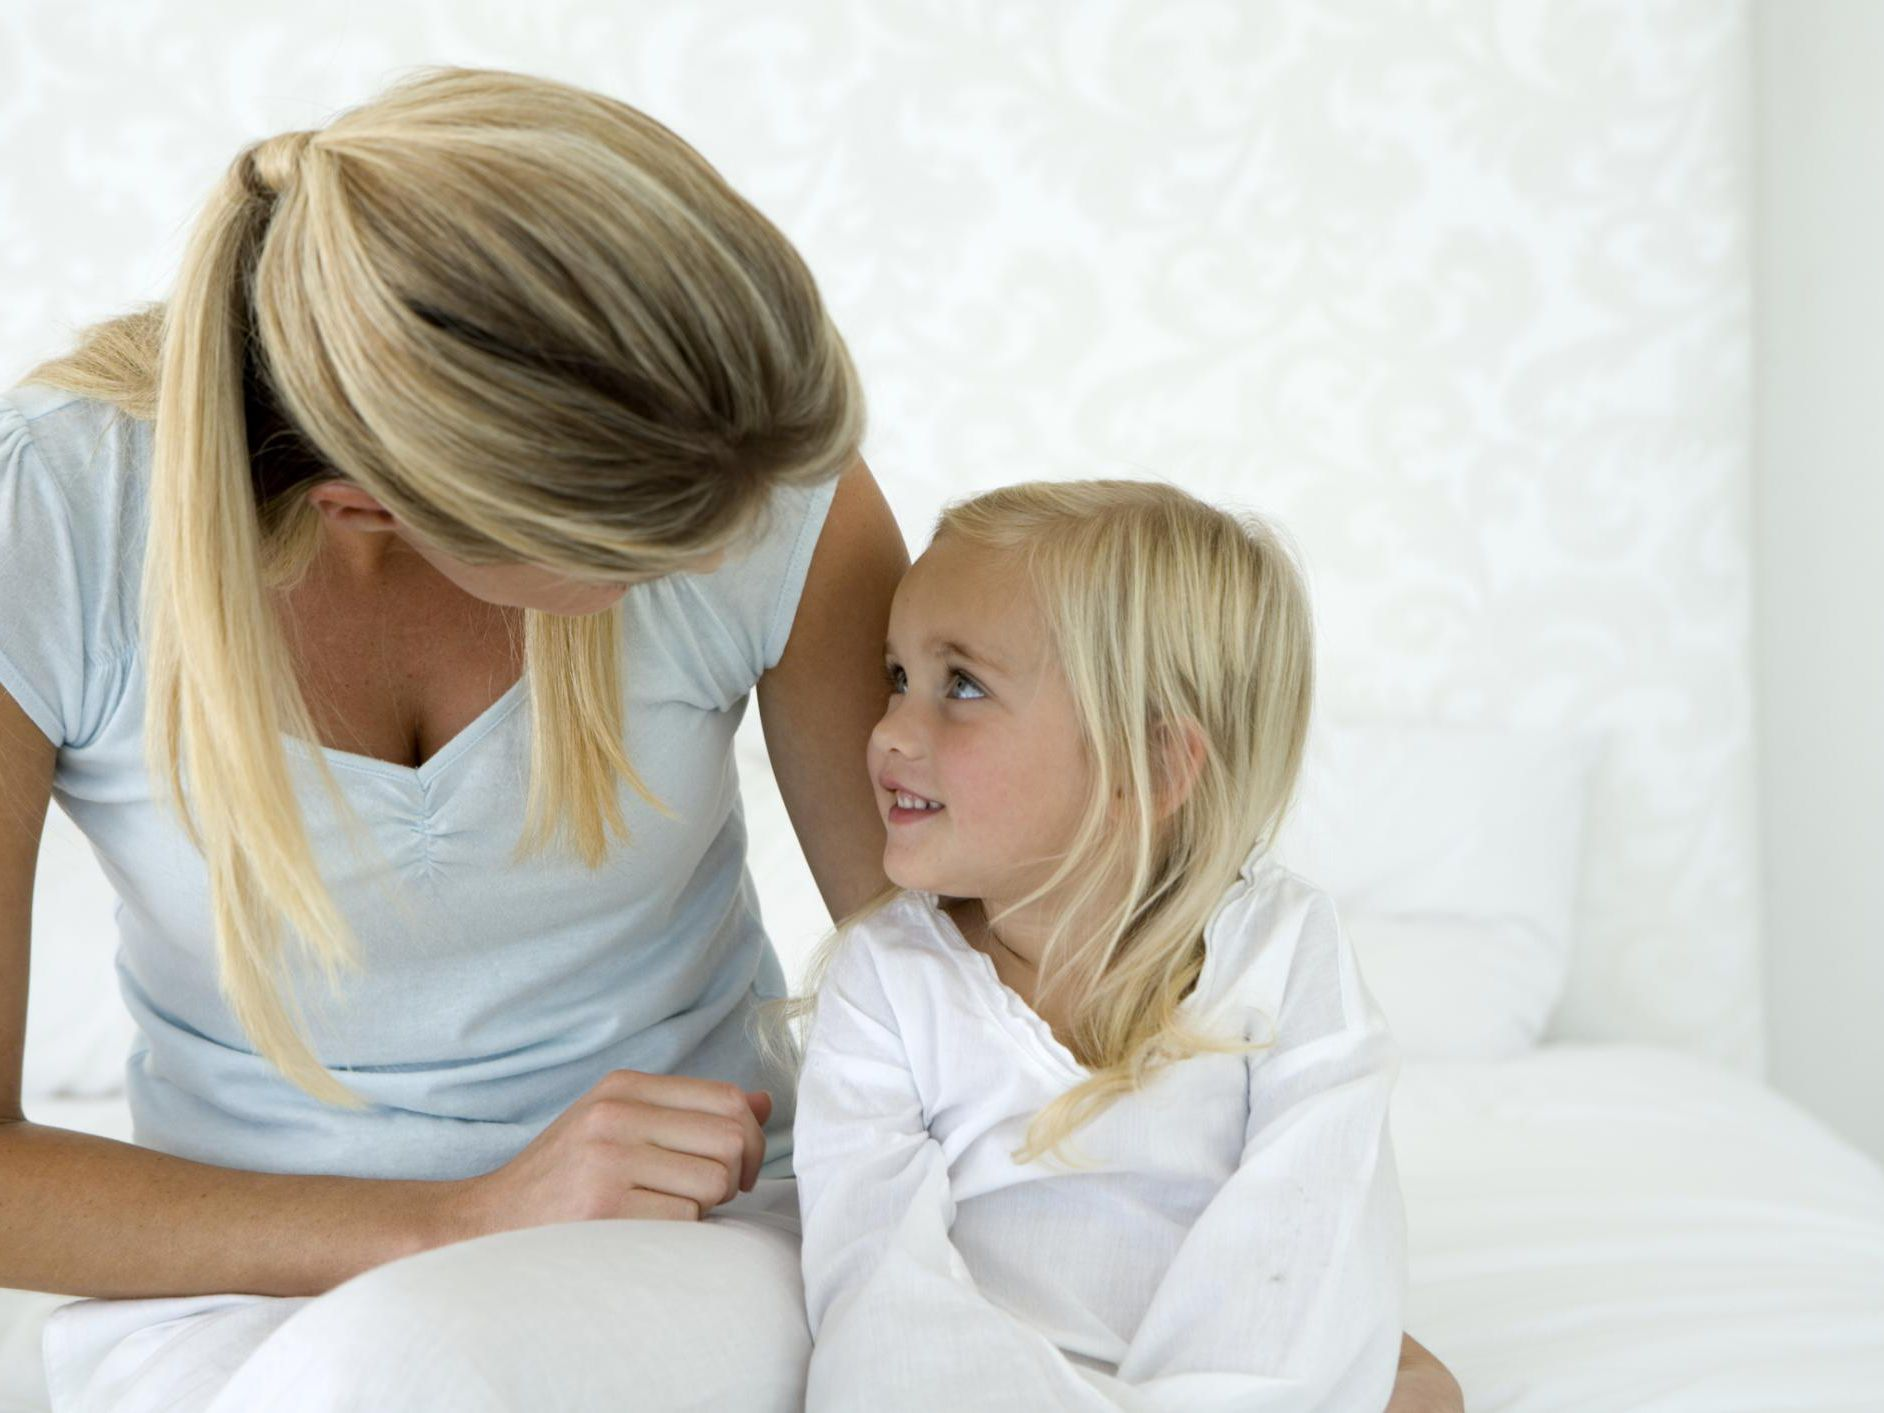 Surprising Reasons Why We Need to Discipline Children